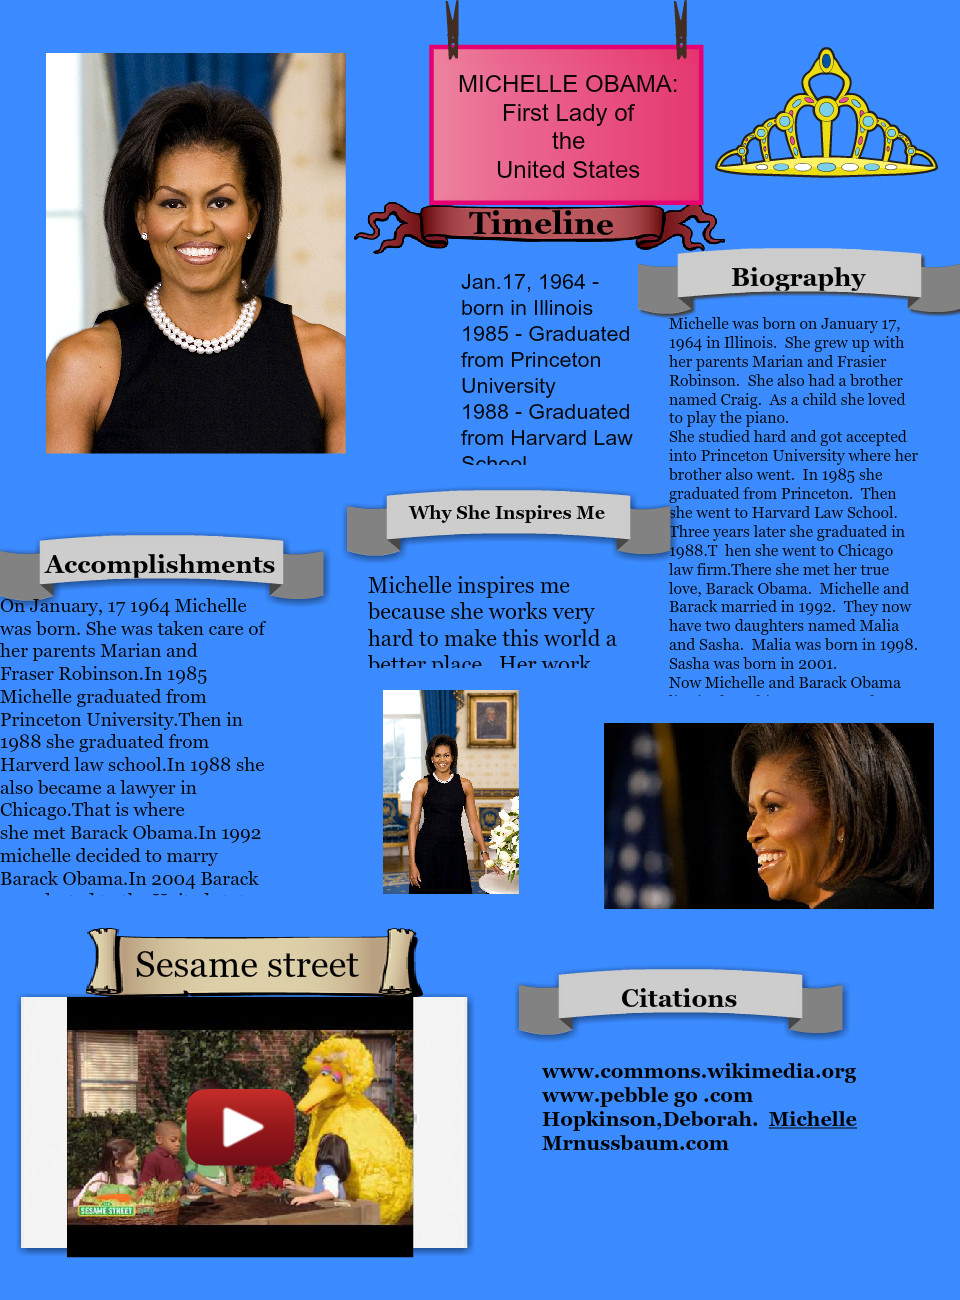 Michelle Obama Accomplishments